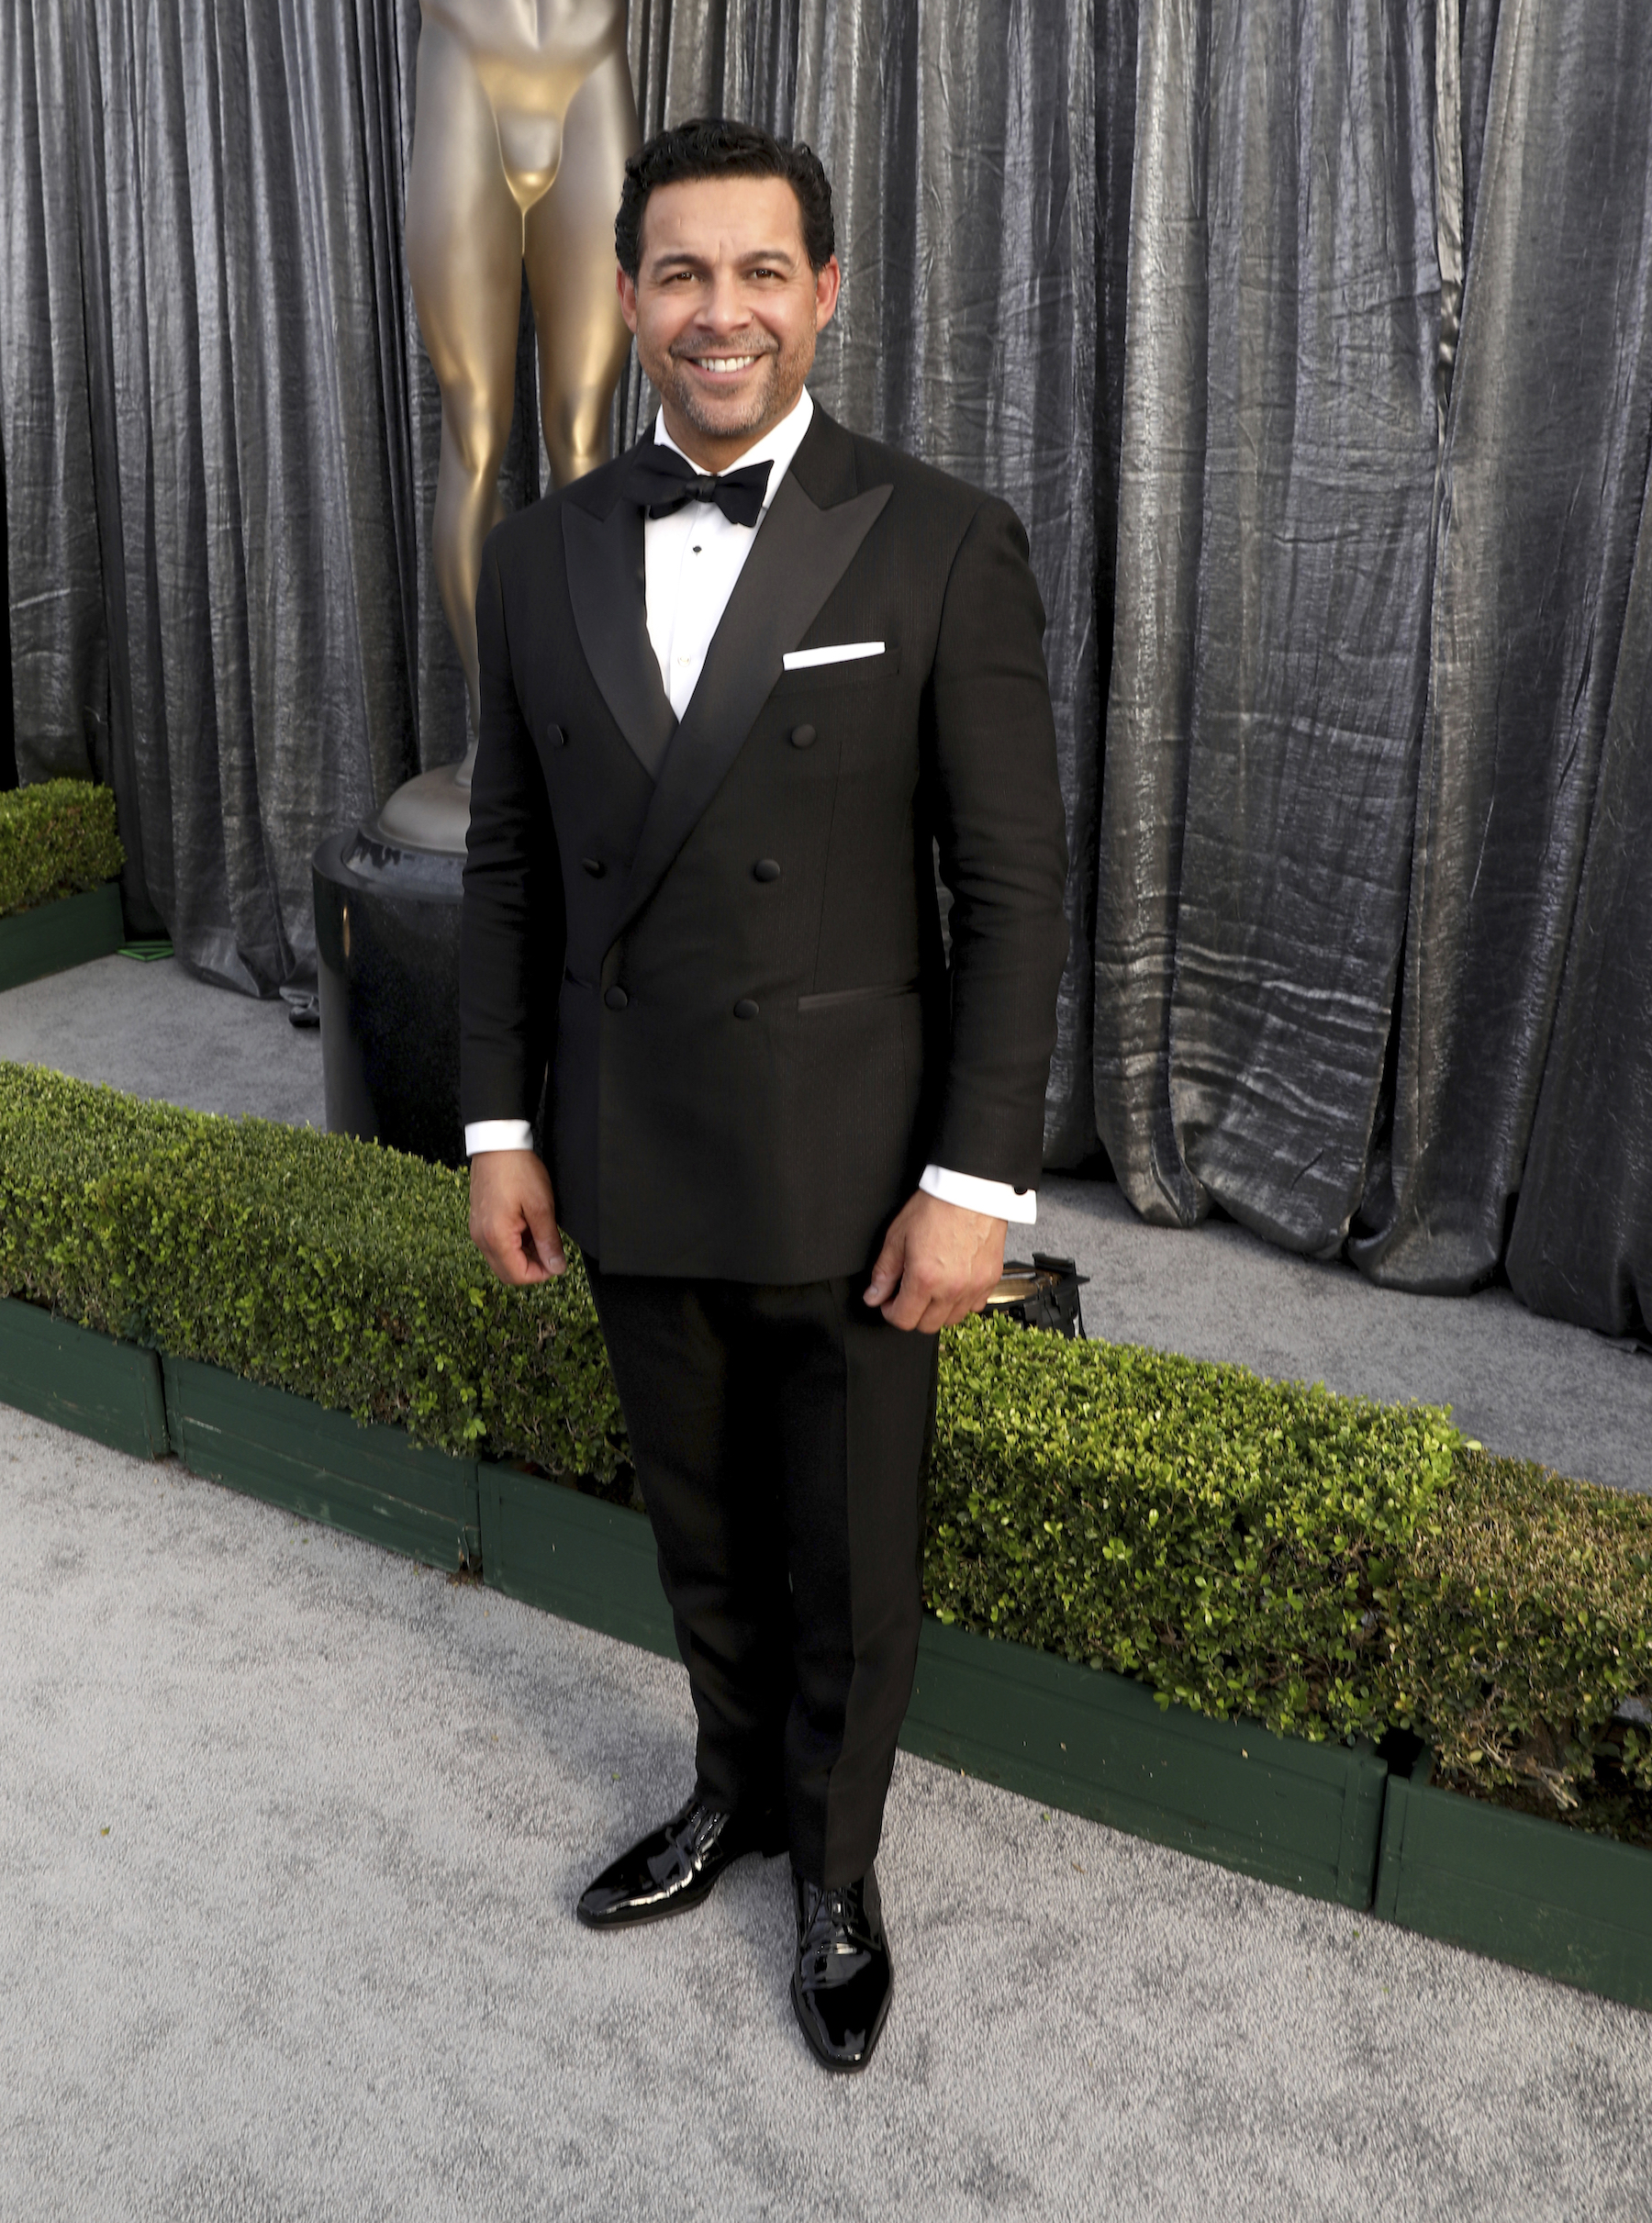 "<div class=""meta image-caption""><div class=""origin-logo origin-image ap""><span>AP</span></div><span class=""caption-text"">Jon Huertas arrives at the 25th annual Screen Actors Guild Awards at the Shrine Auditorium & Expo Hall on Sunday, Jan. 27, 2019, in Los Angeles. (Matt Sayles/Invision/AP)</span></div>"